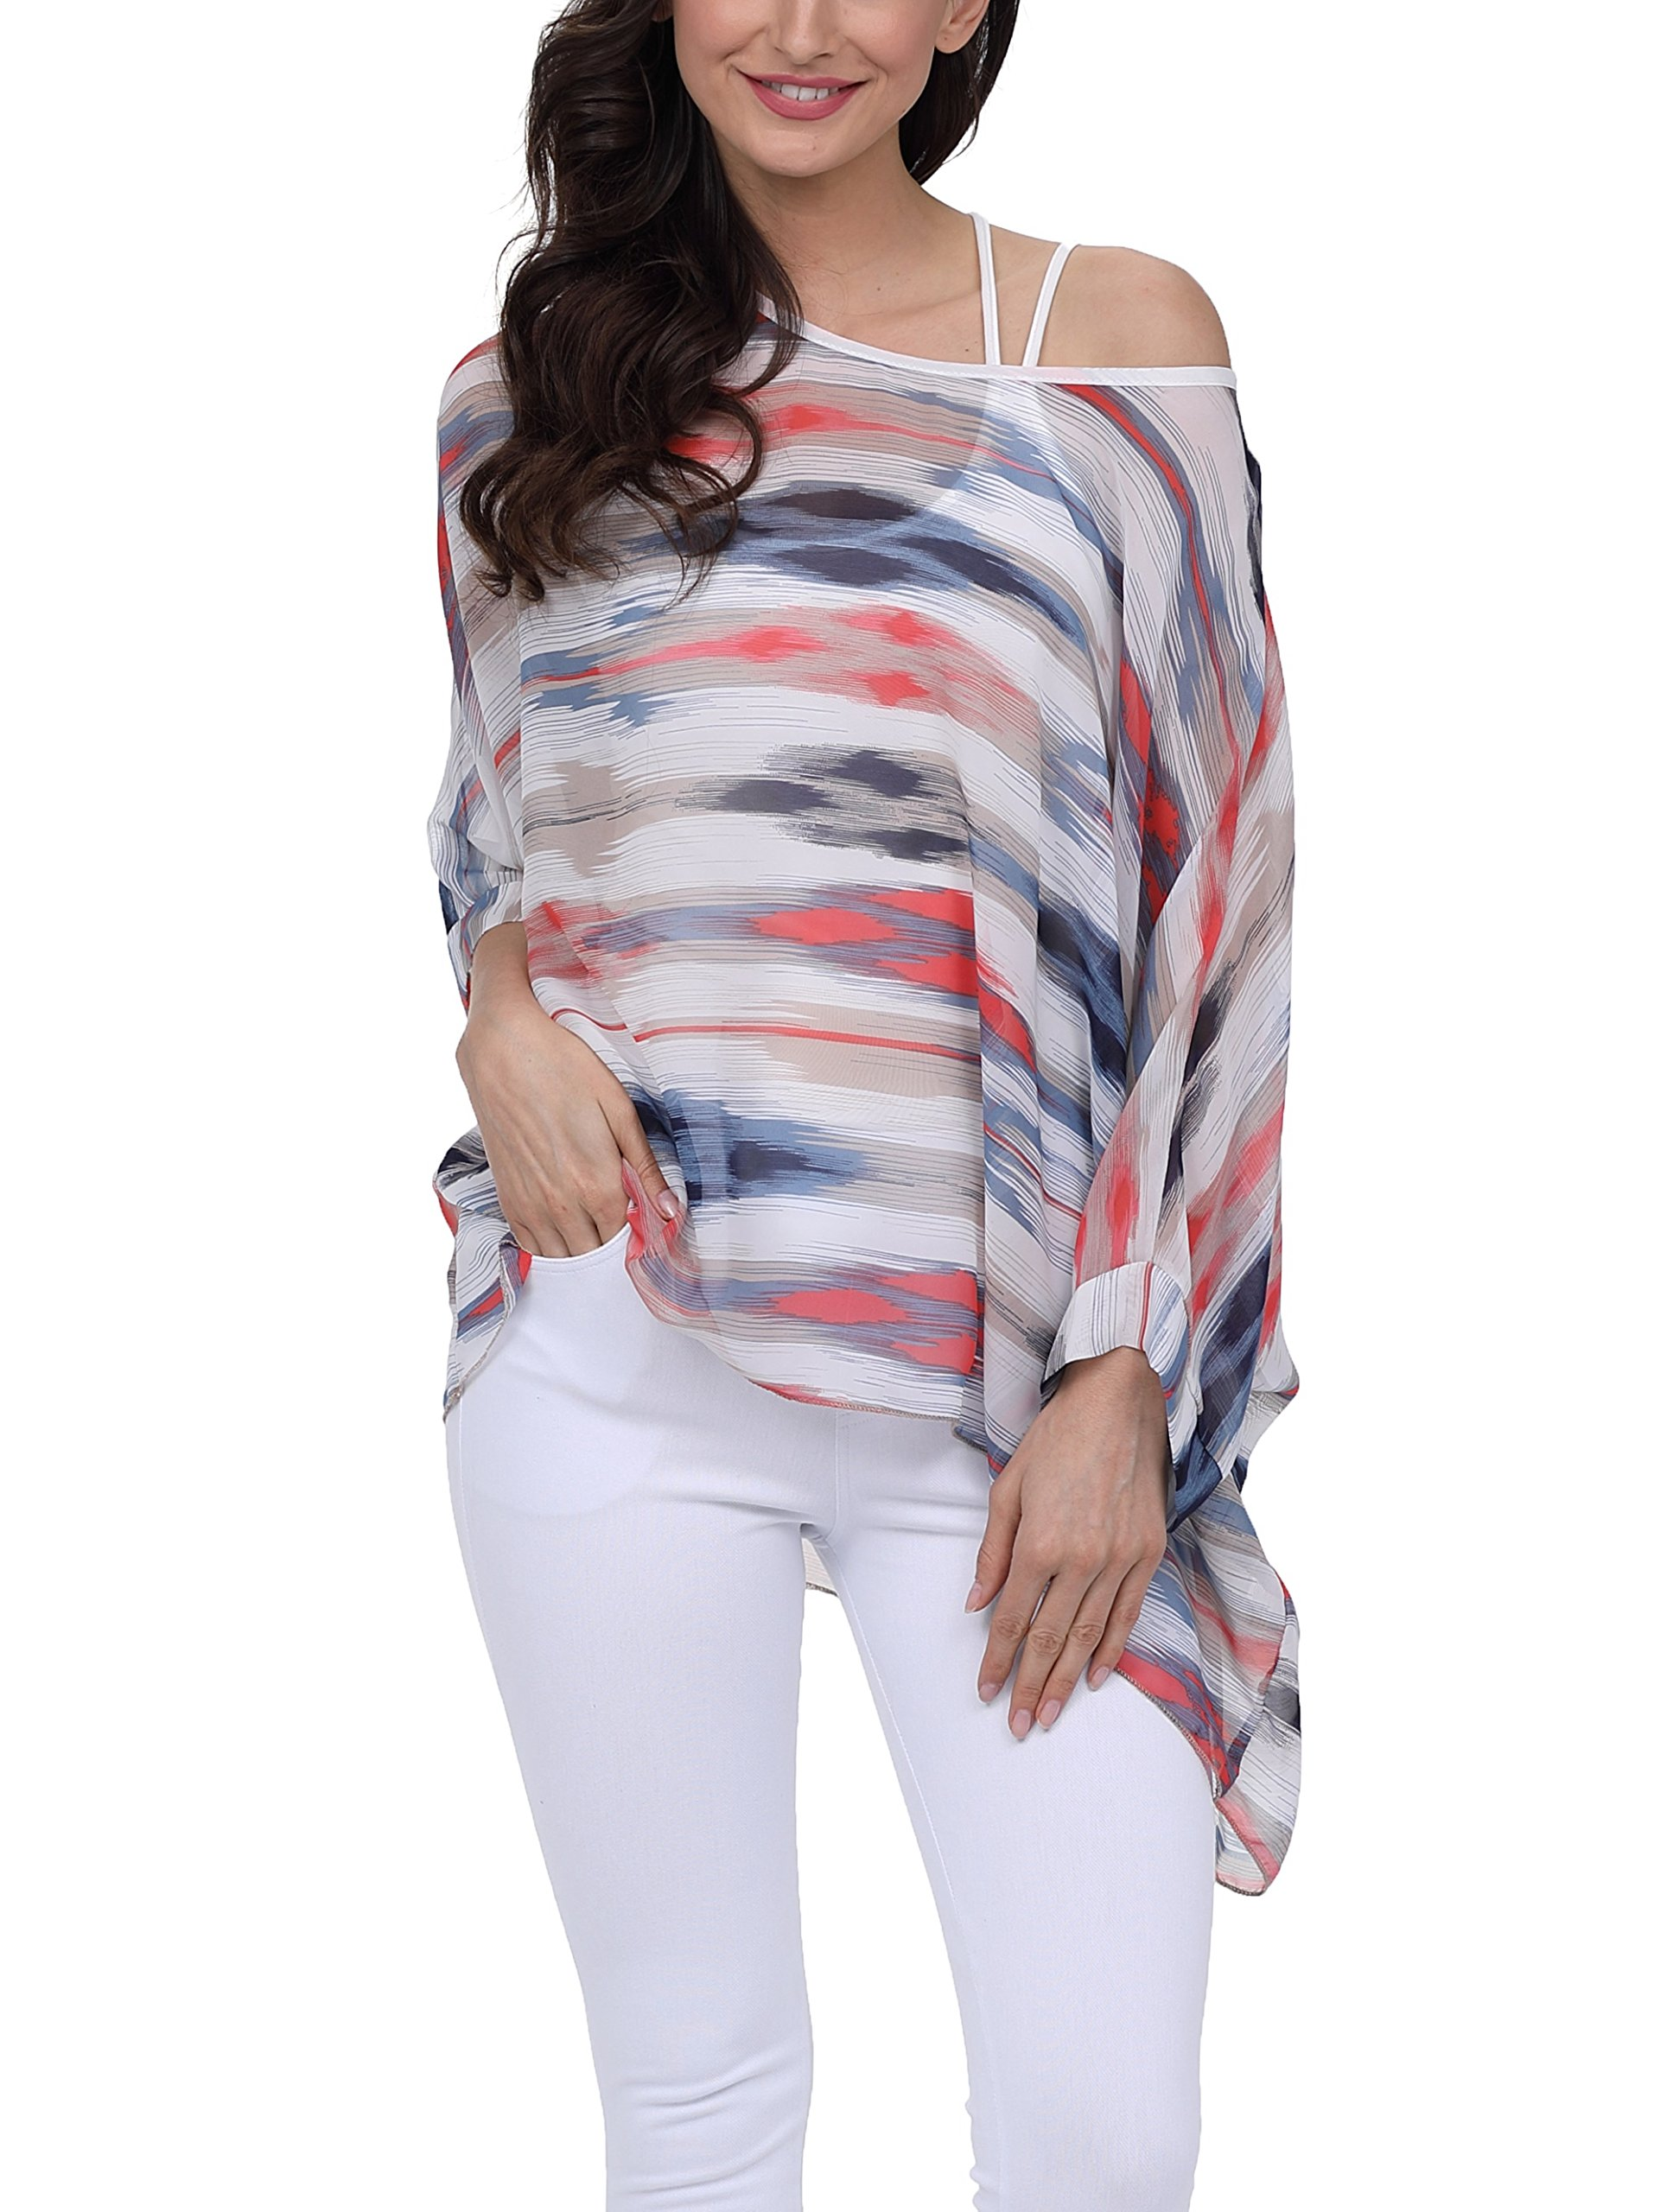 iNewbetter Womens Floral Batwing Sleeve Chiffon Beach Loose Blouse Tunic Tops PB282